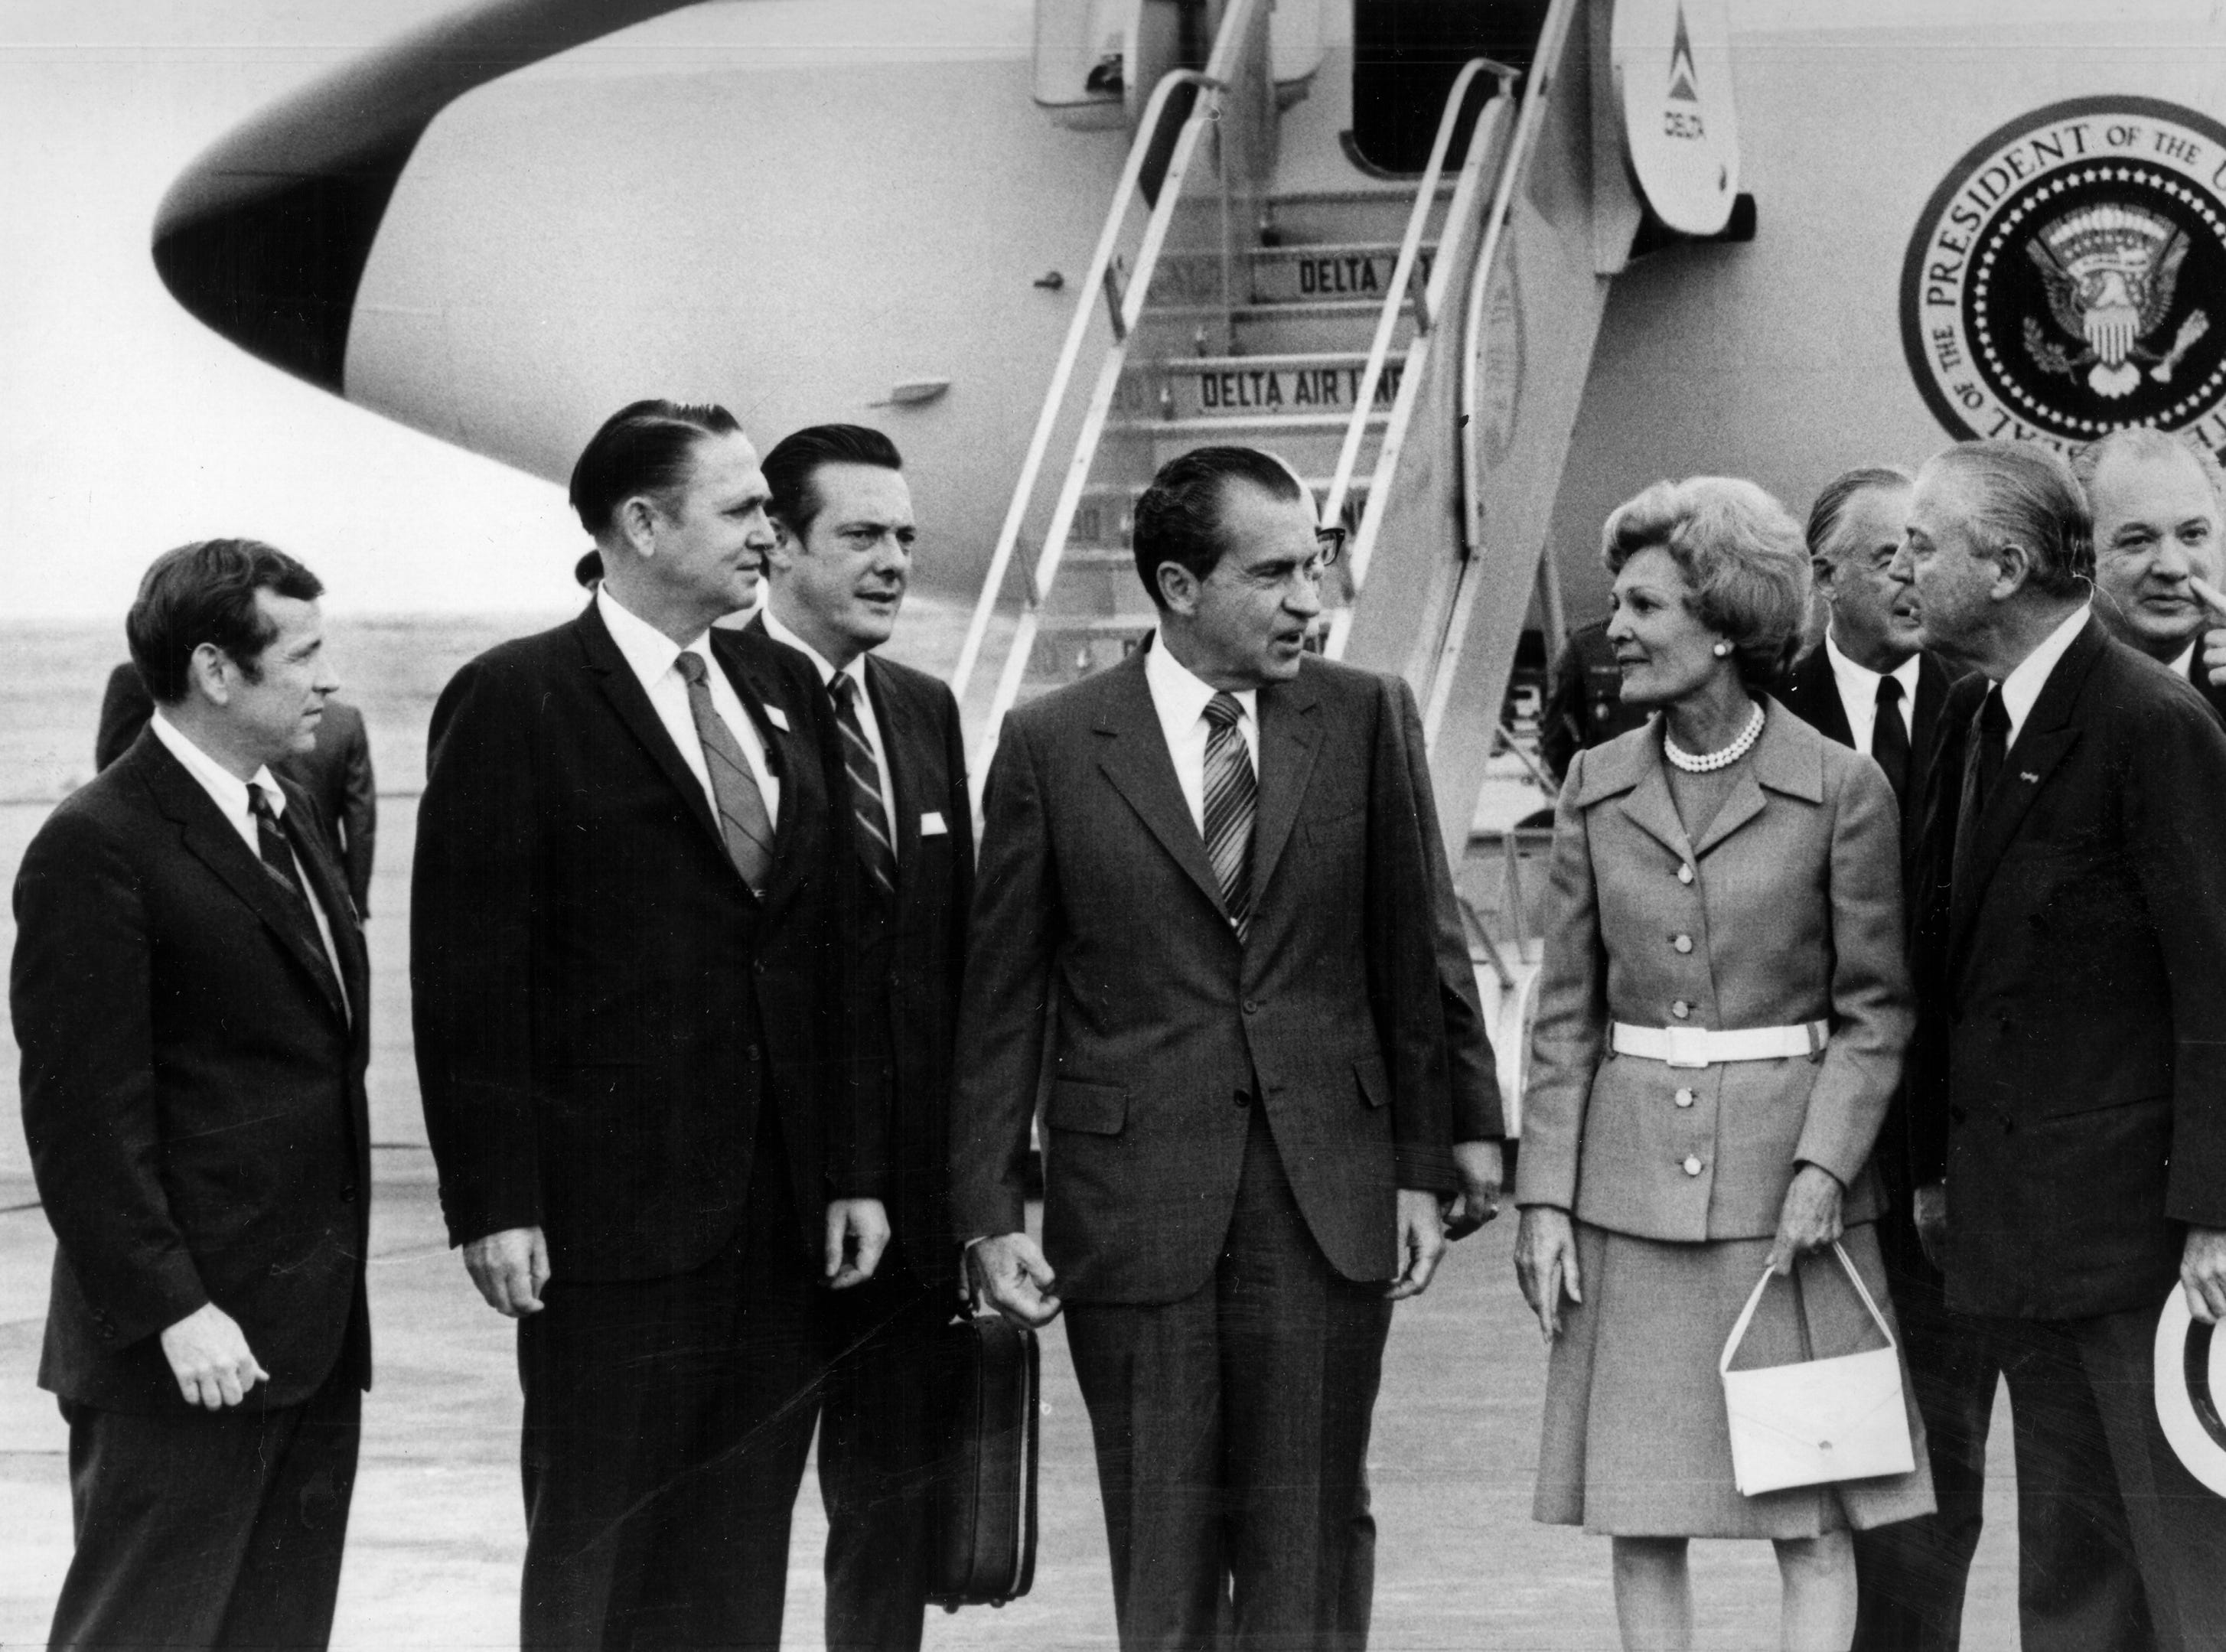 In a May 28, 1970, photograph, President Richard Nixon arrives for the Billy Graham Knoxville Crusade. Pictured are U.S. Sen. Howard H. Baker, Jr., left, U.S. Rep. John J. Duncan, Sr., U.S. Rep. Bill Brock III, Nixon, and First Lady Pat Nixon. (News Sentinel Archive)